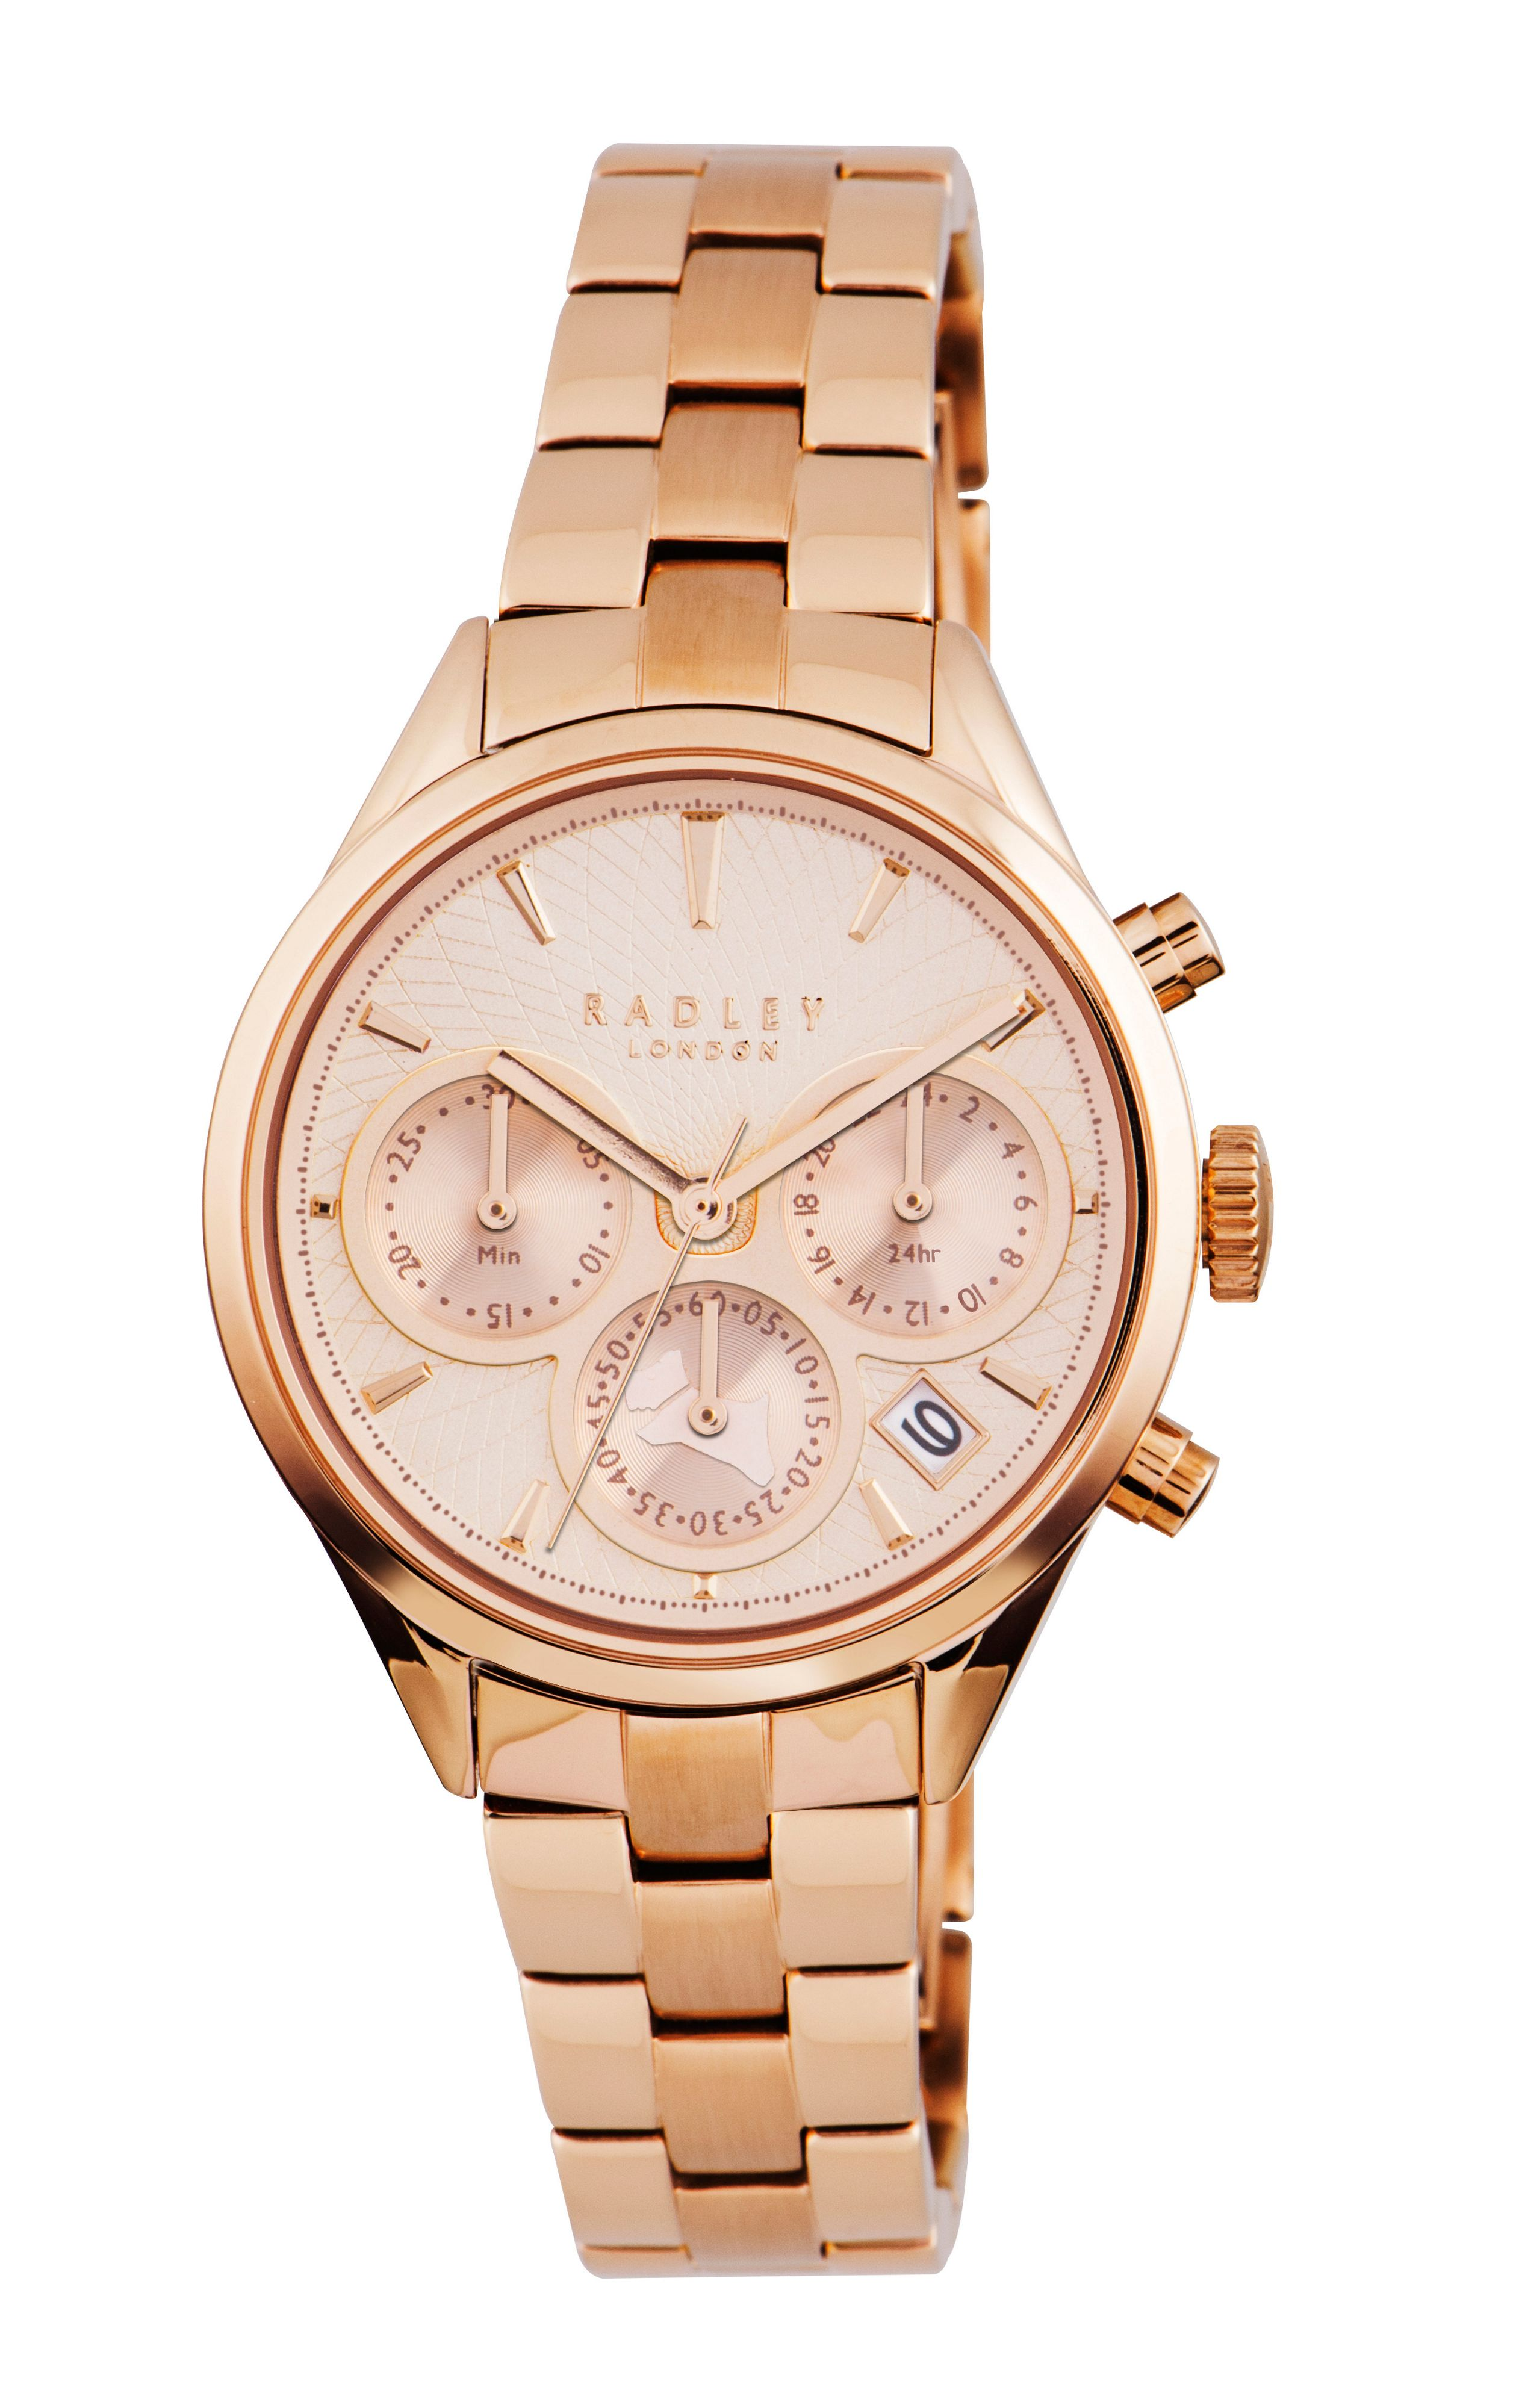 RY4186 Rose gold ladies chronograph watch